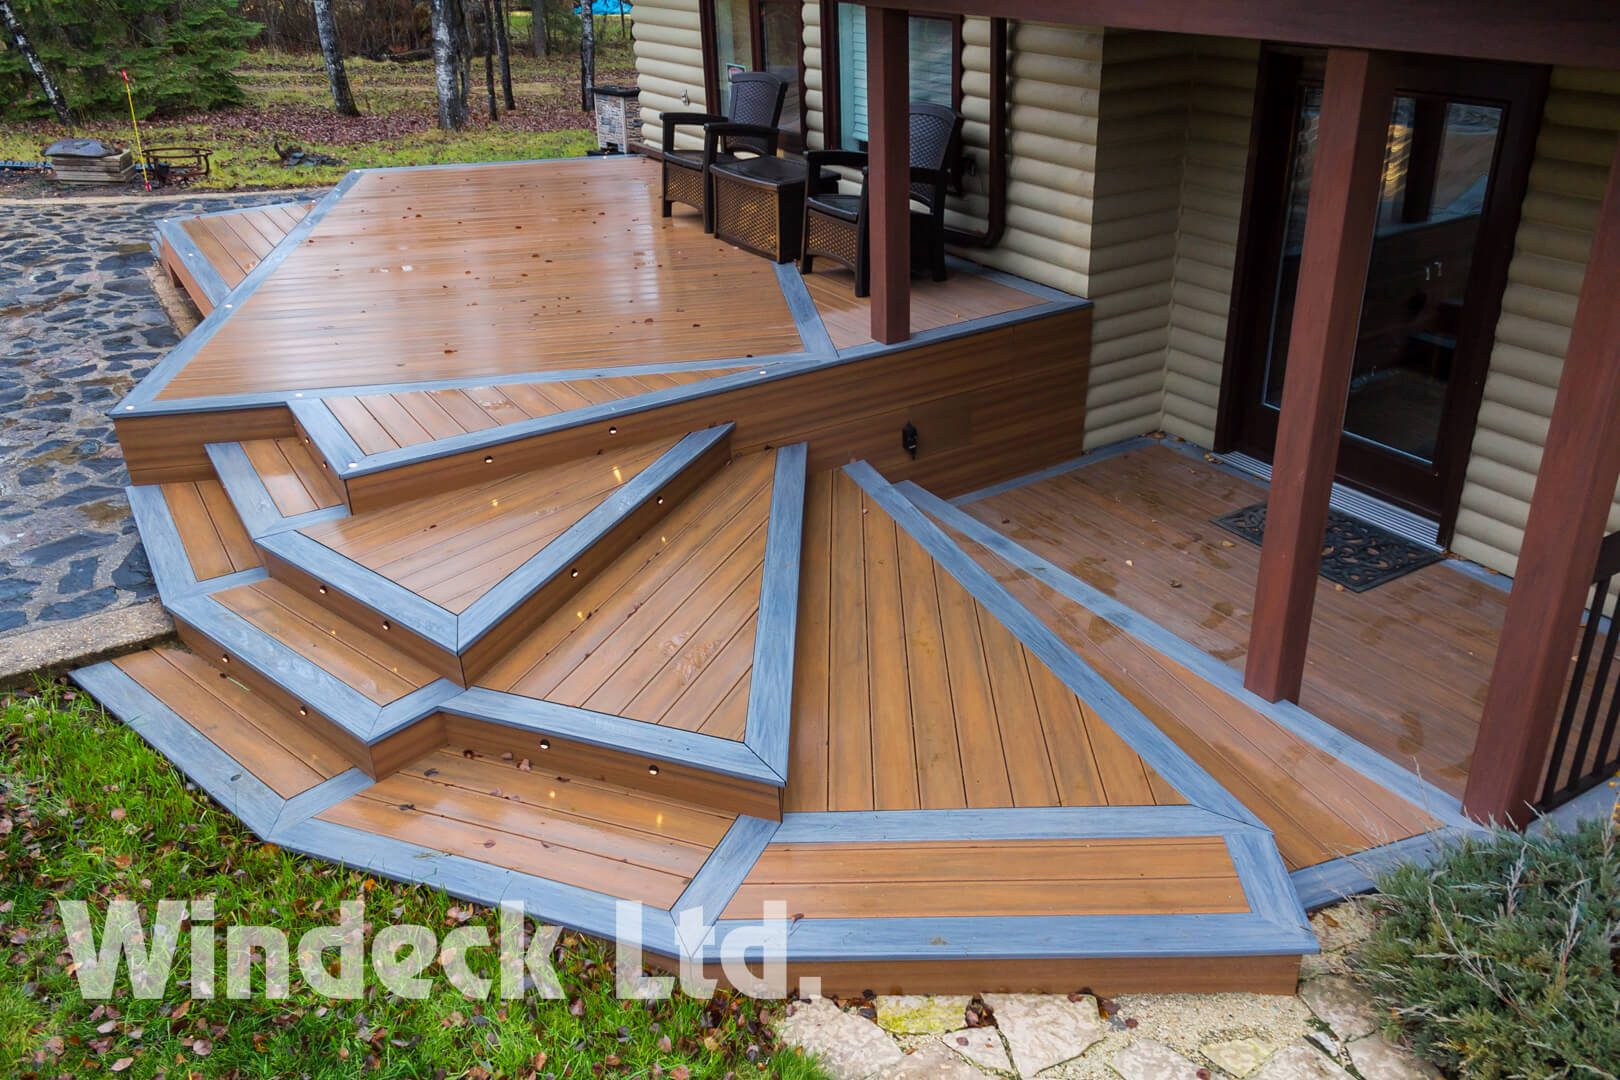 Deck Board Mania - Windeck Ltd. - Composite Decking Winnipeg, Manitoba